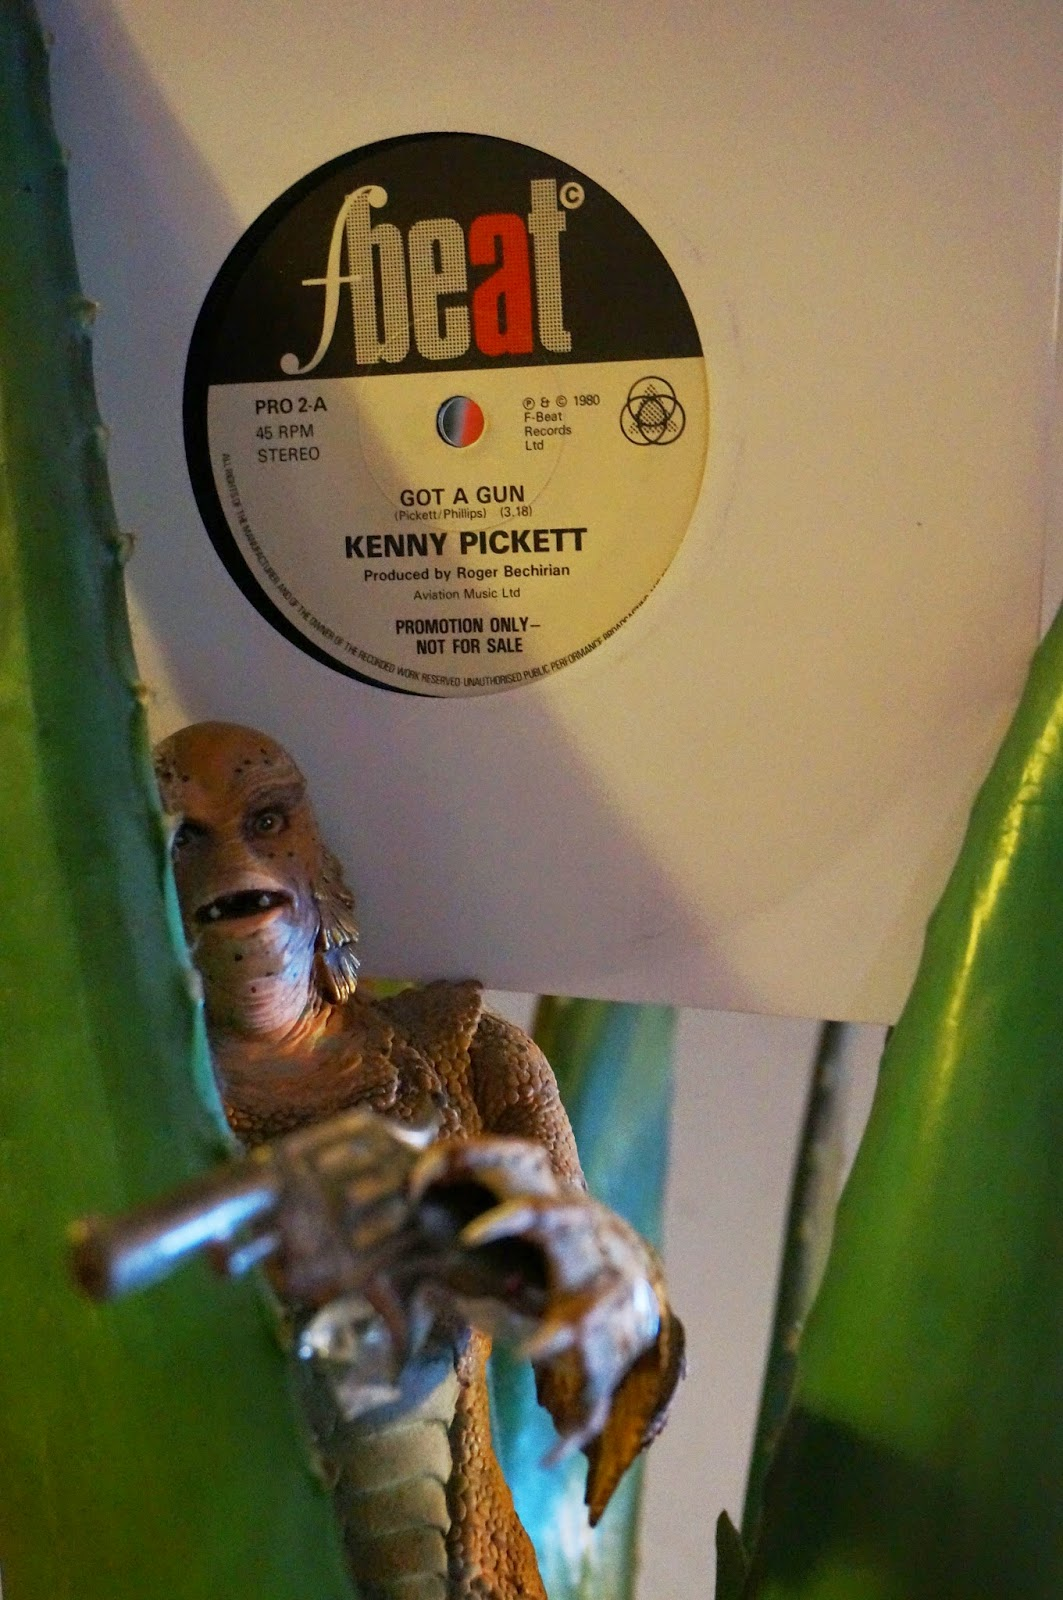 http://crazeegirlsound.blogspot.fr/2015/03/kenny-pickett-got-gun-1980.html